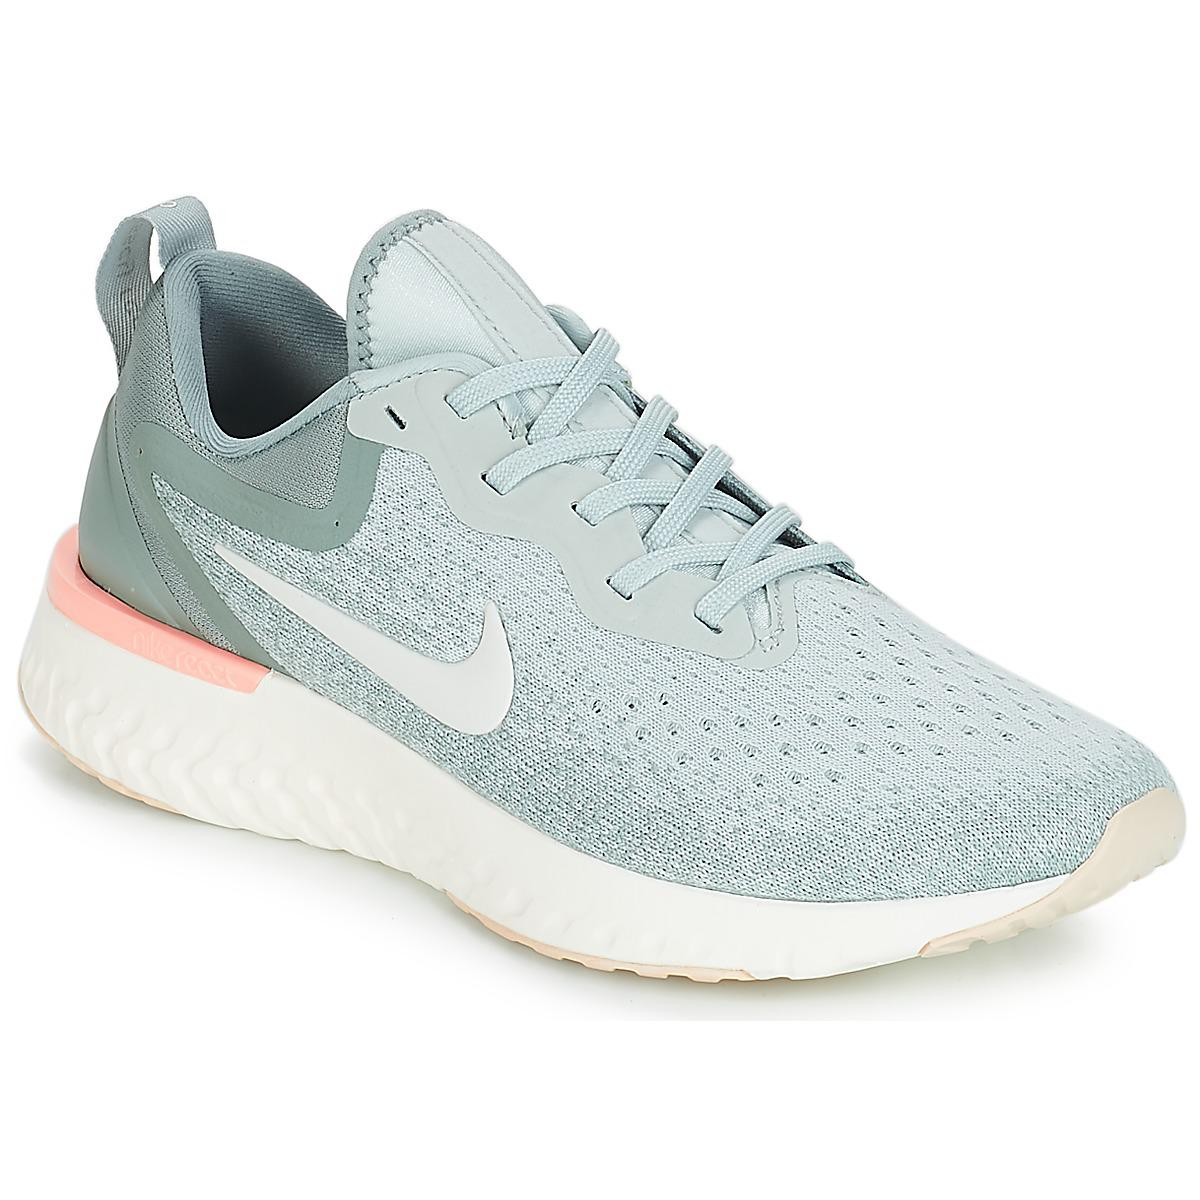 abc9891c1c337 Nike Odyssey React Women s Running Trainers In Grey in Gray - Lyst